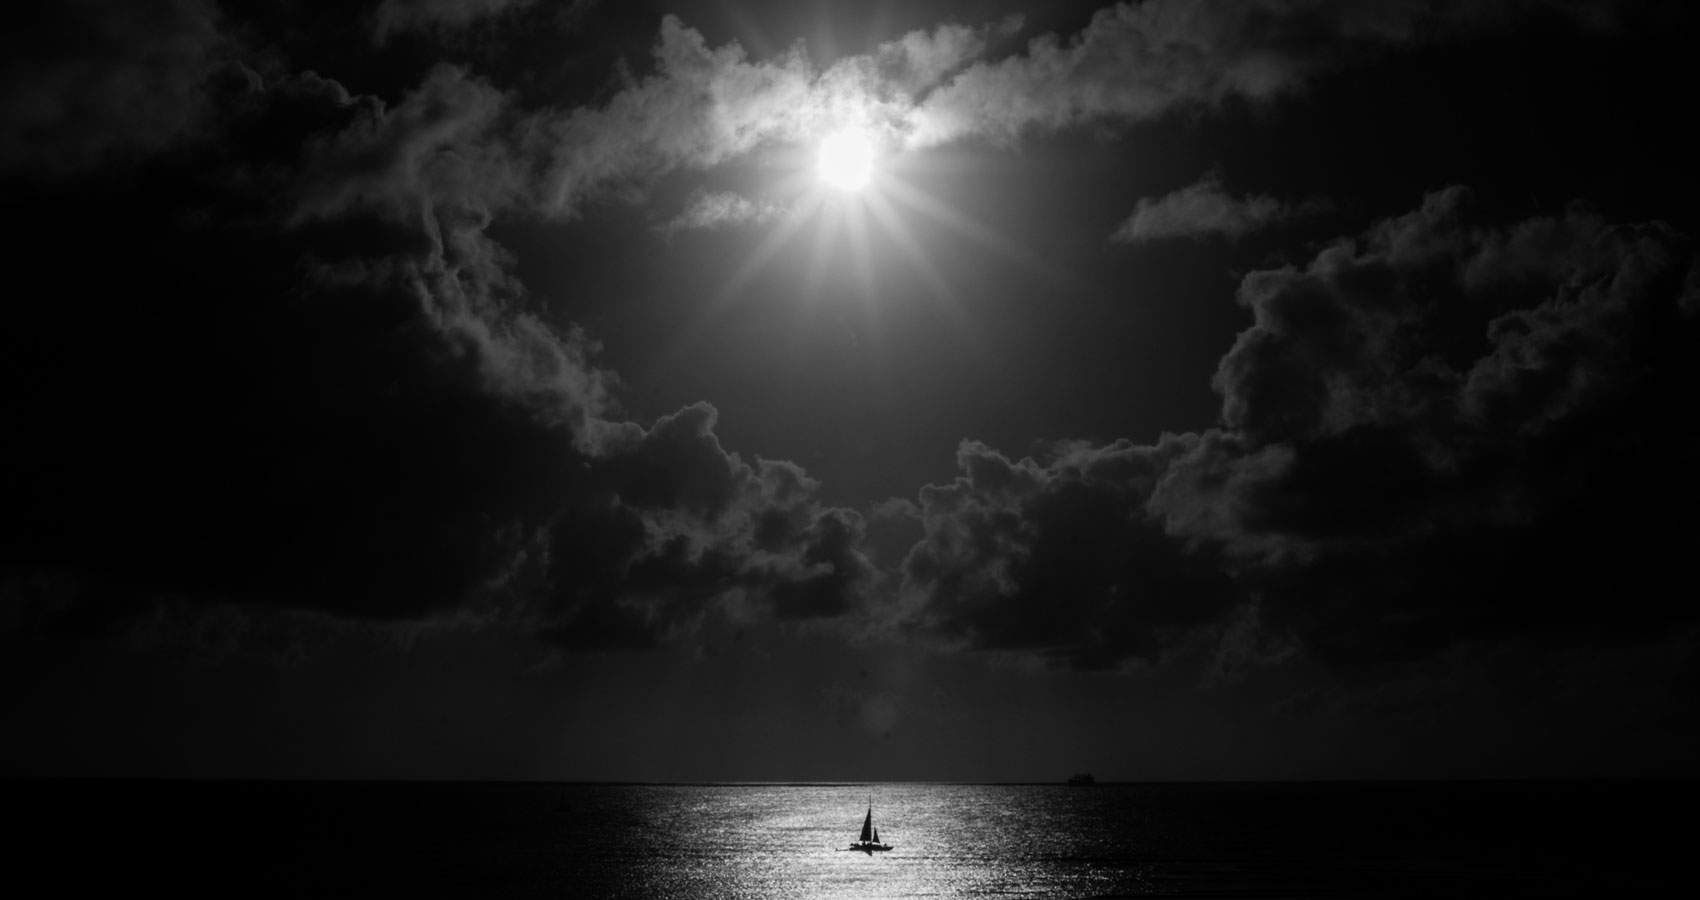 The World - A Boat and Moon, poem written by Bogpan at Spilwords.com